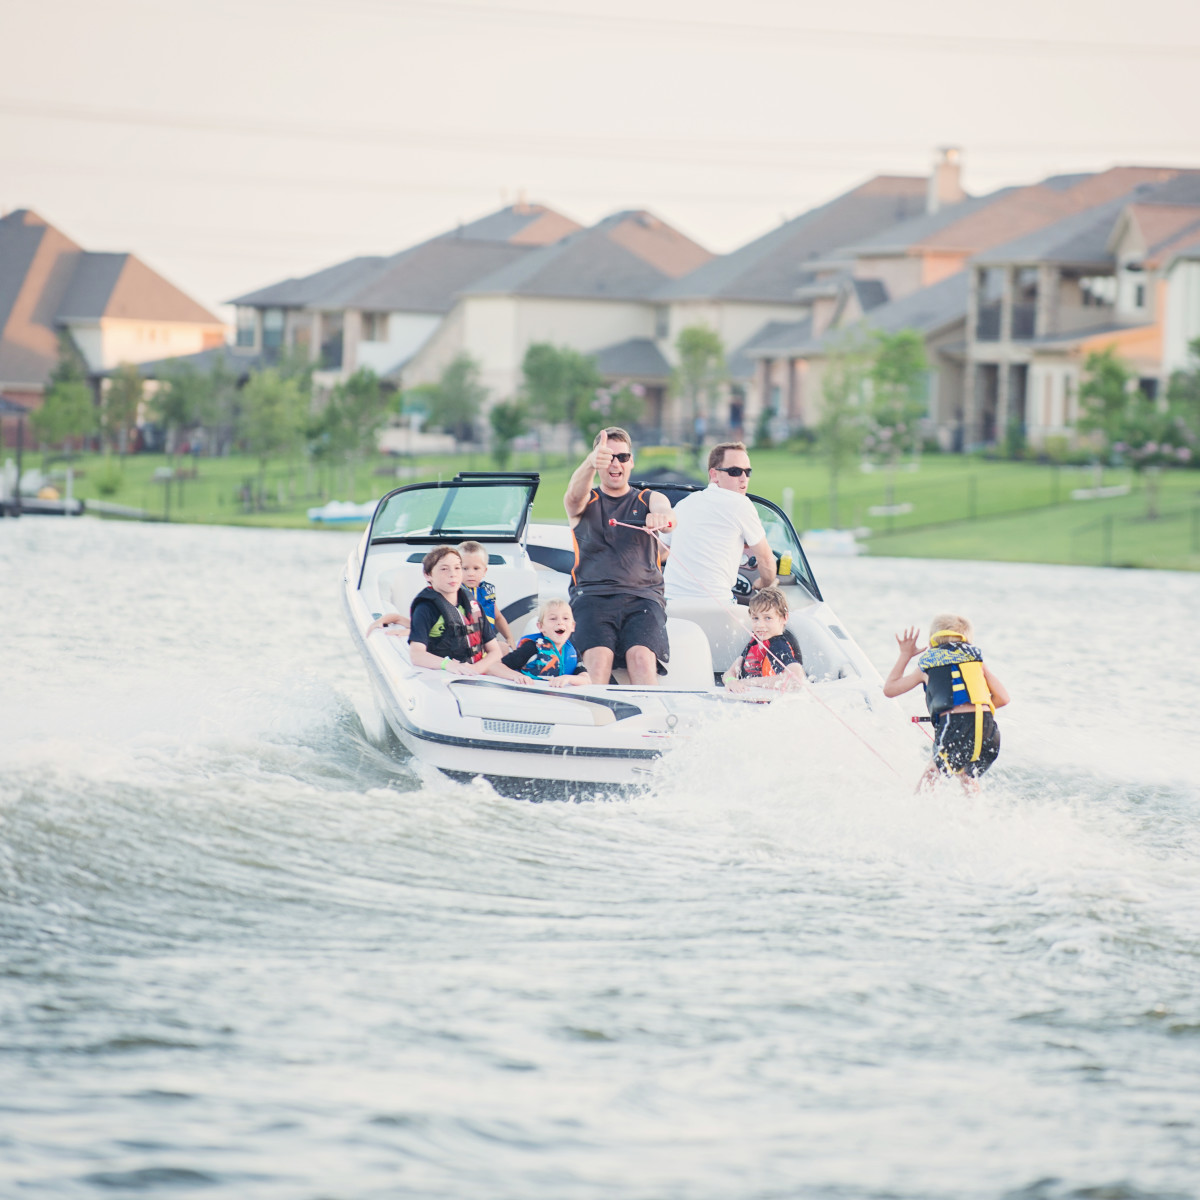 Towne Lake watersports